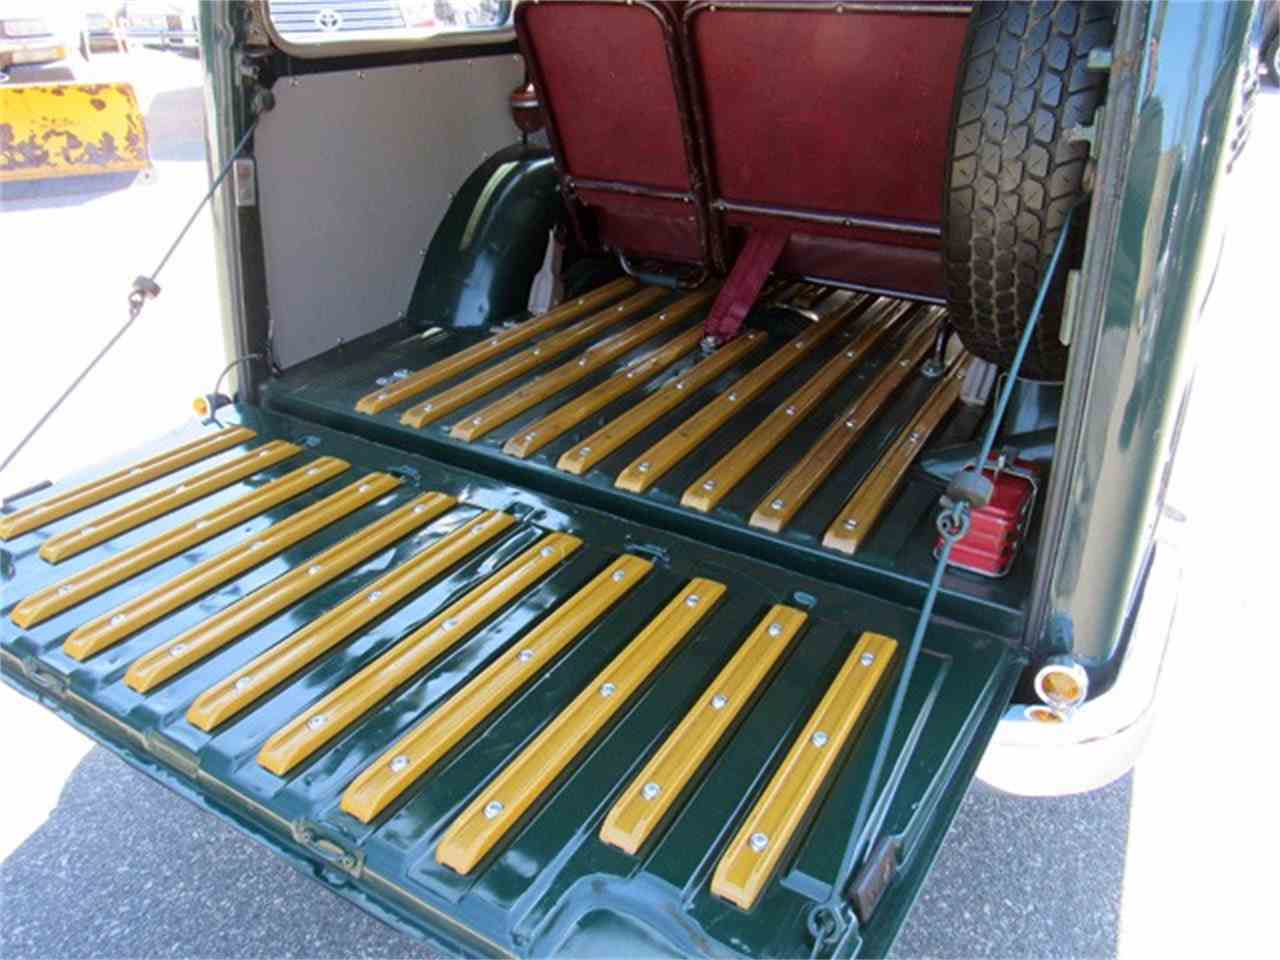 Large Picture of 1950 Willys Jeep Wagon located in Holliston Massachusetts - $32,000.00 - LM4A